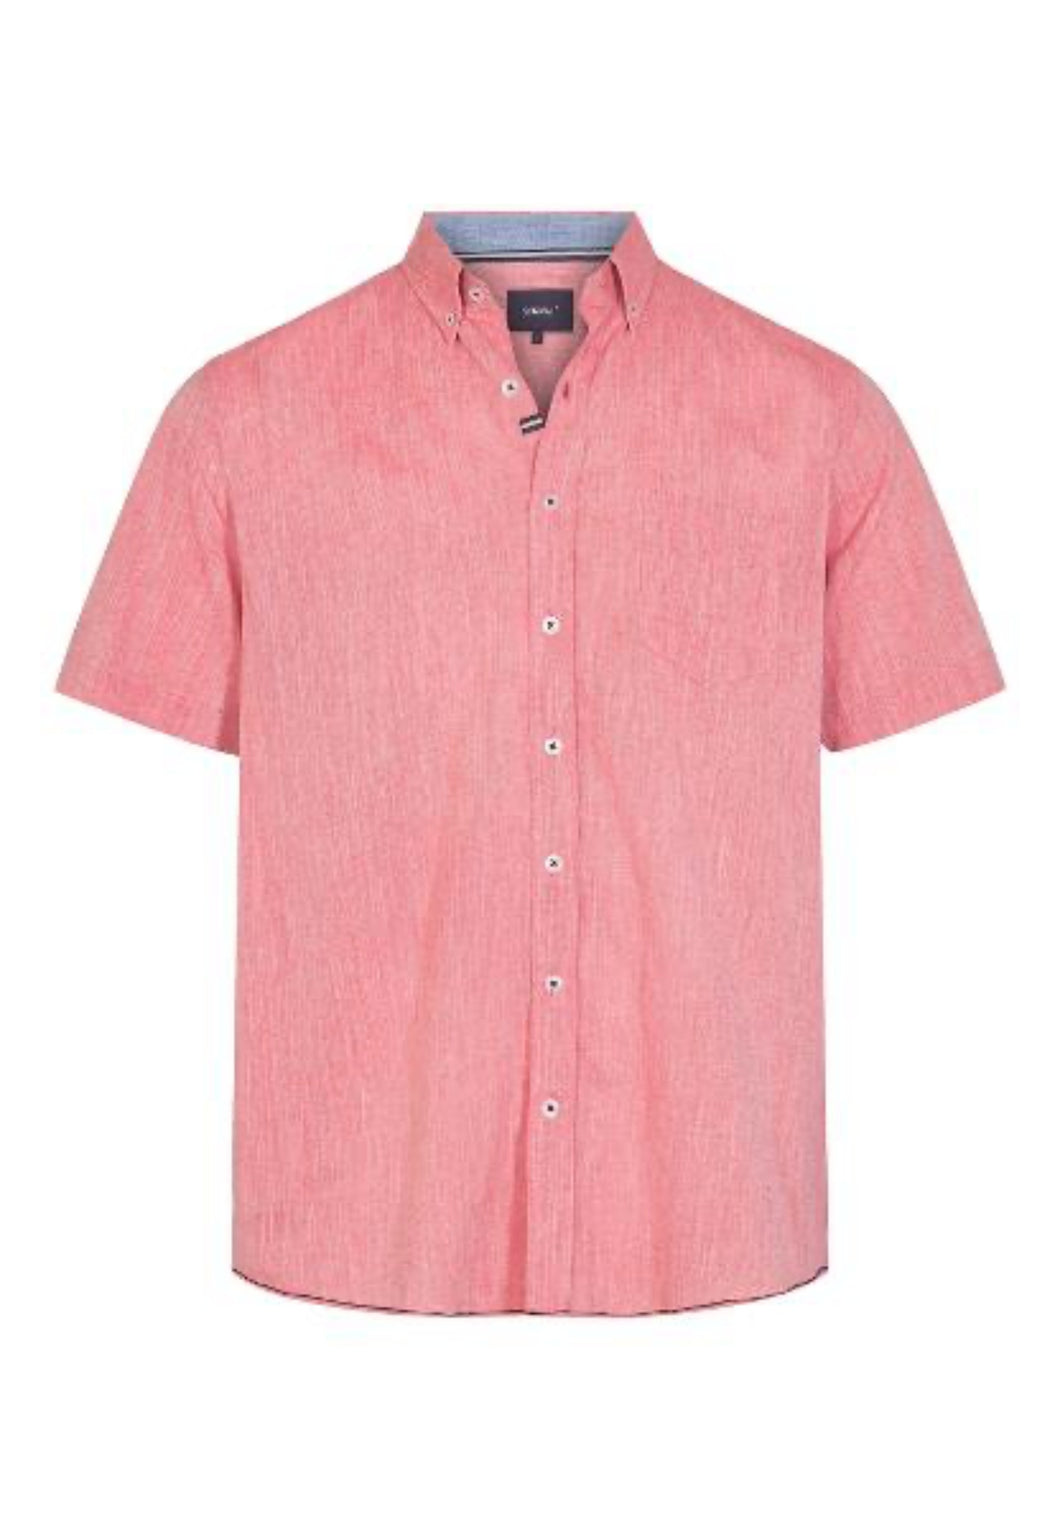 Kevin Shirt - Coral Red / S - SKJORTOR - SHORT SLEEVE 3XL,